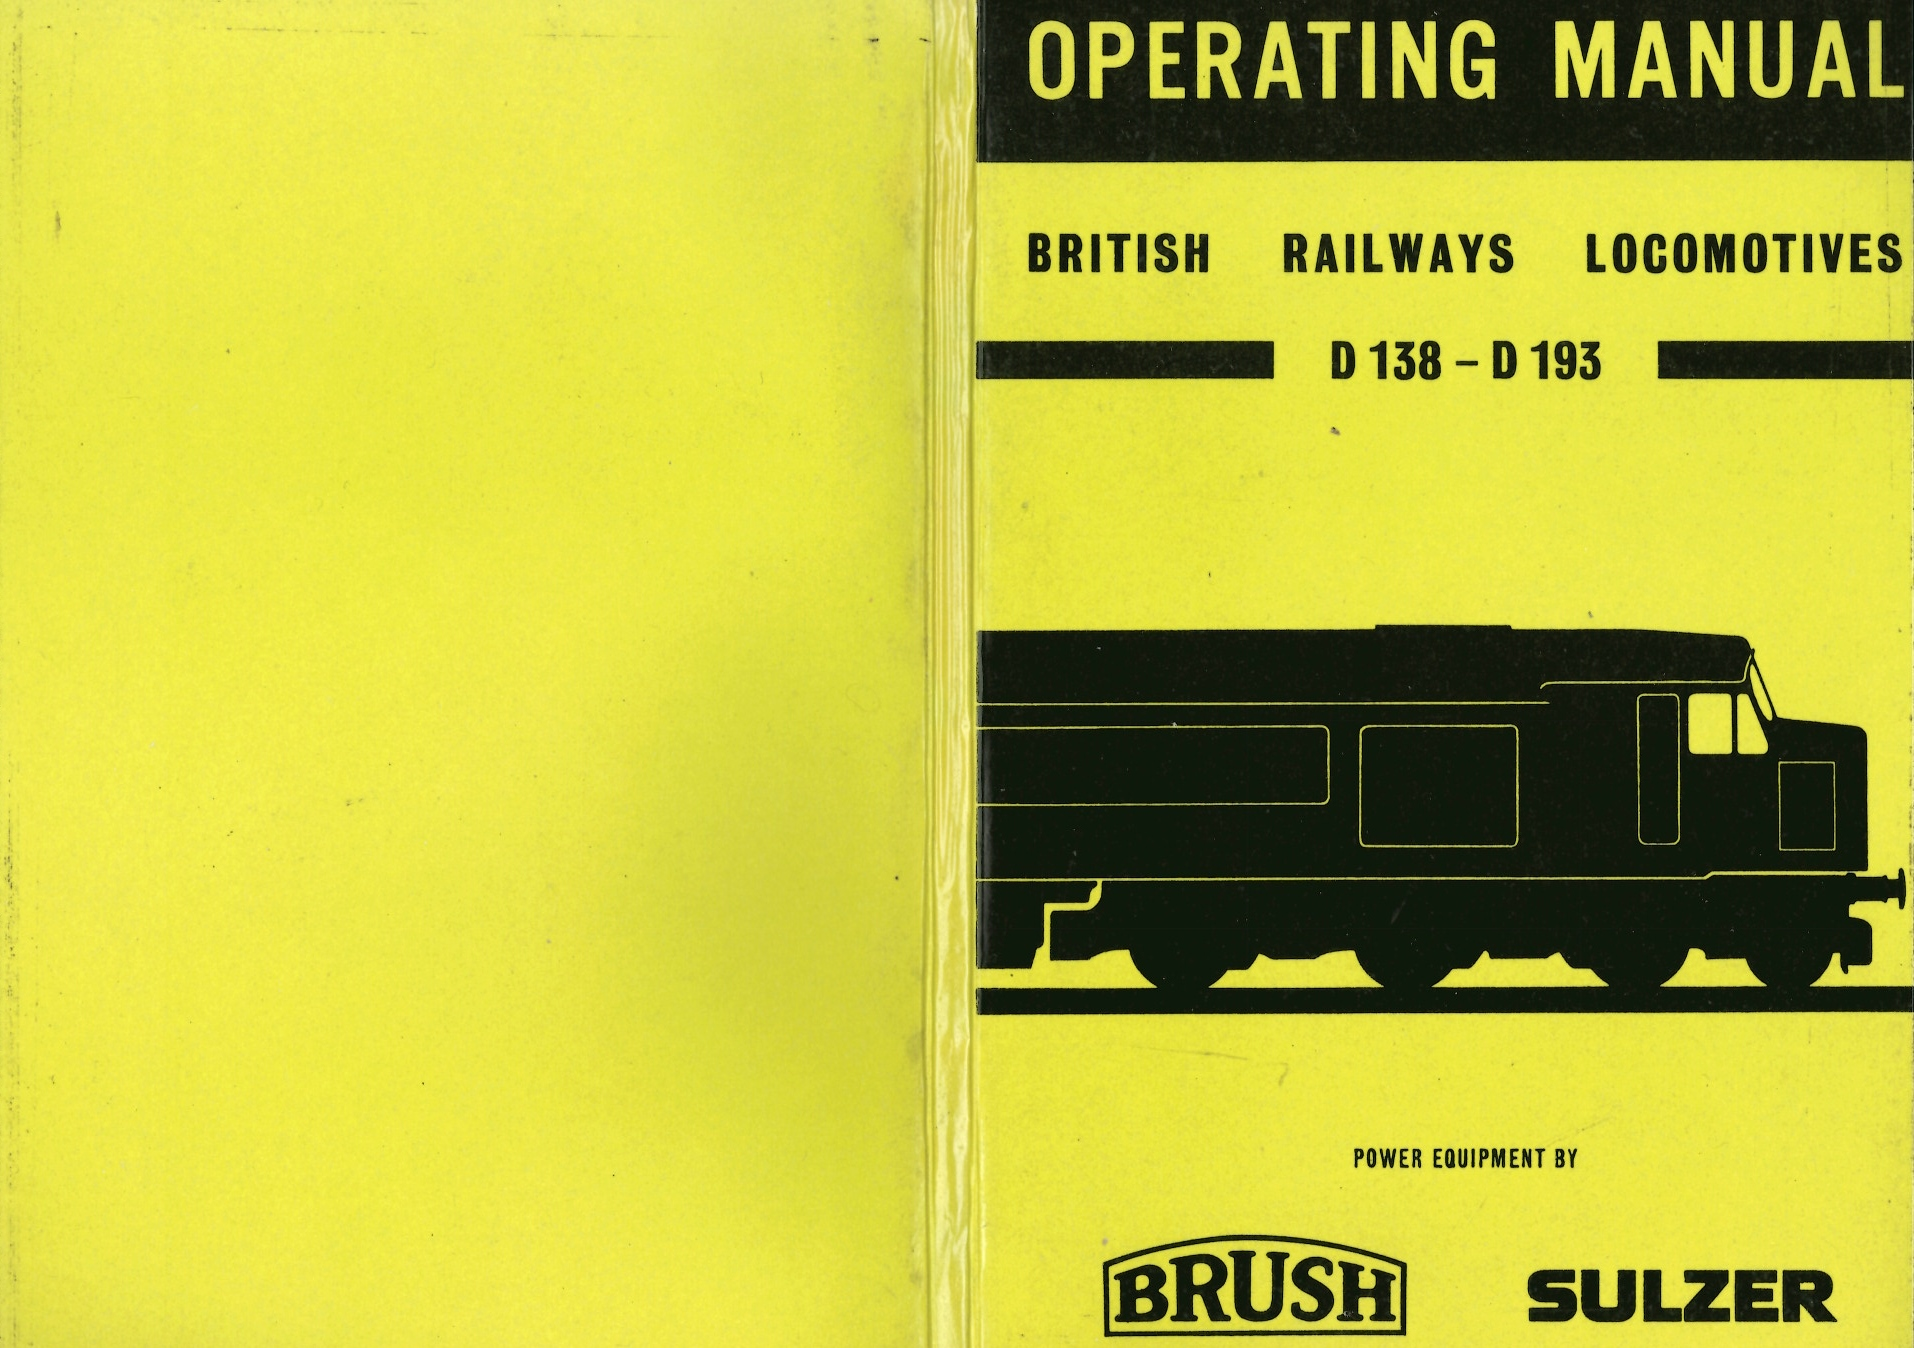 hight resolution of operation manual british railways locomotives d138 d193 brush electrical engineering